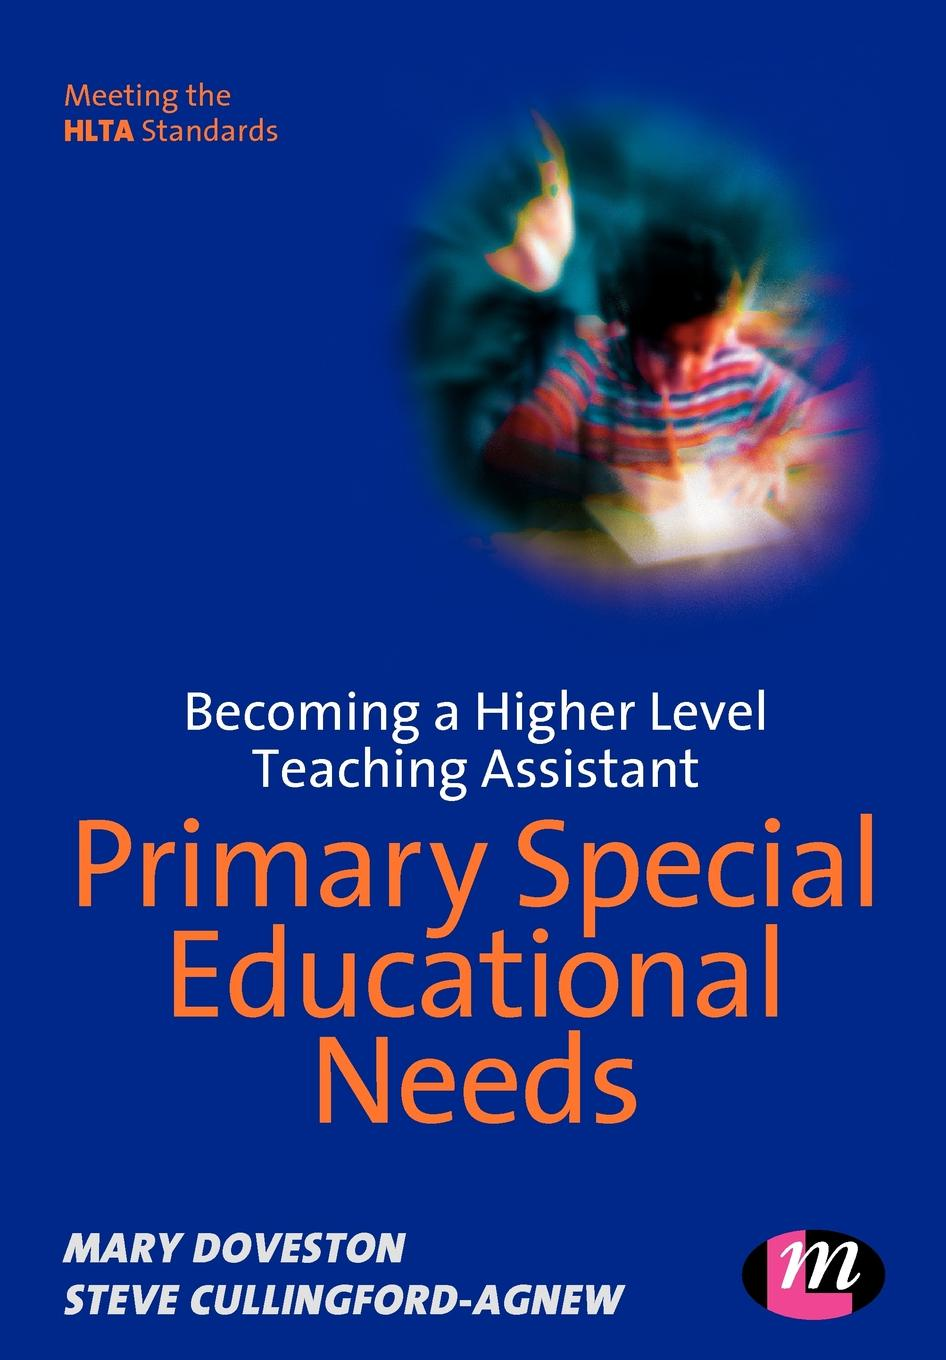 Mary Doveston, Steve Cullingford-Agnew, Stephen Cullingford-Agnew Becoming a Higher Level Teaching Assistant. Primary Special Educational Needs mathematics and special educational needs